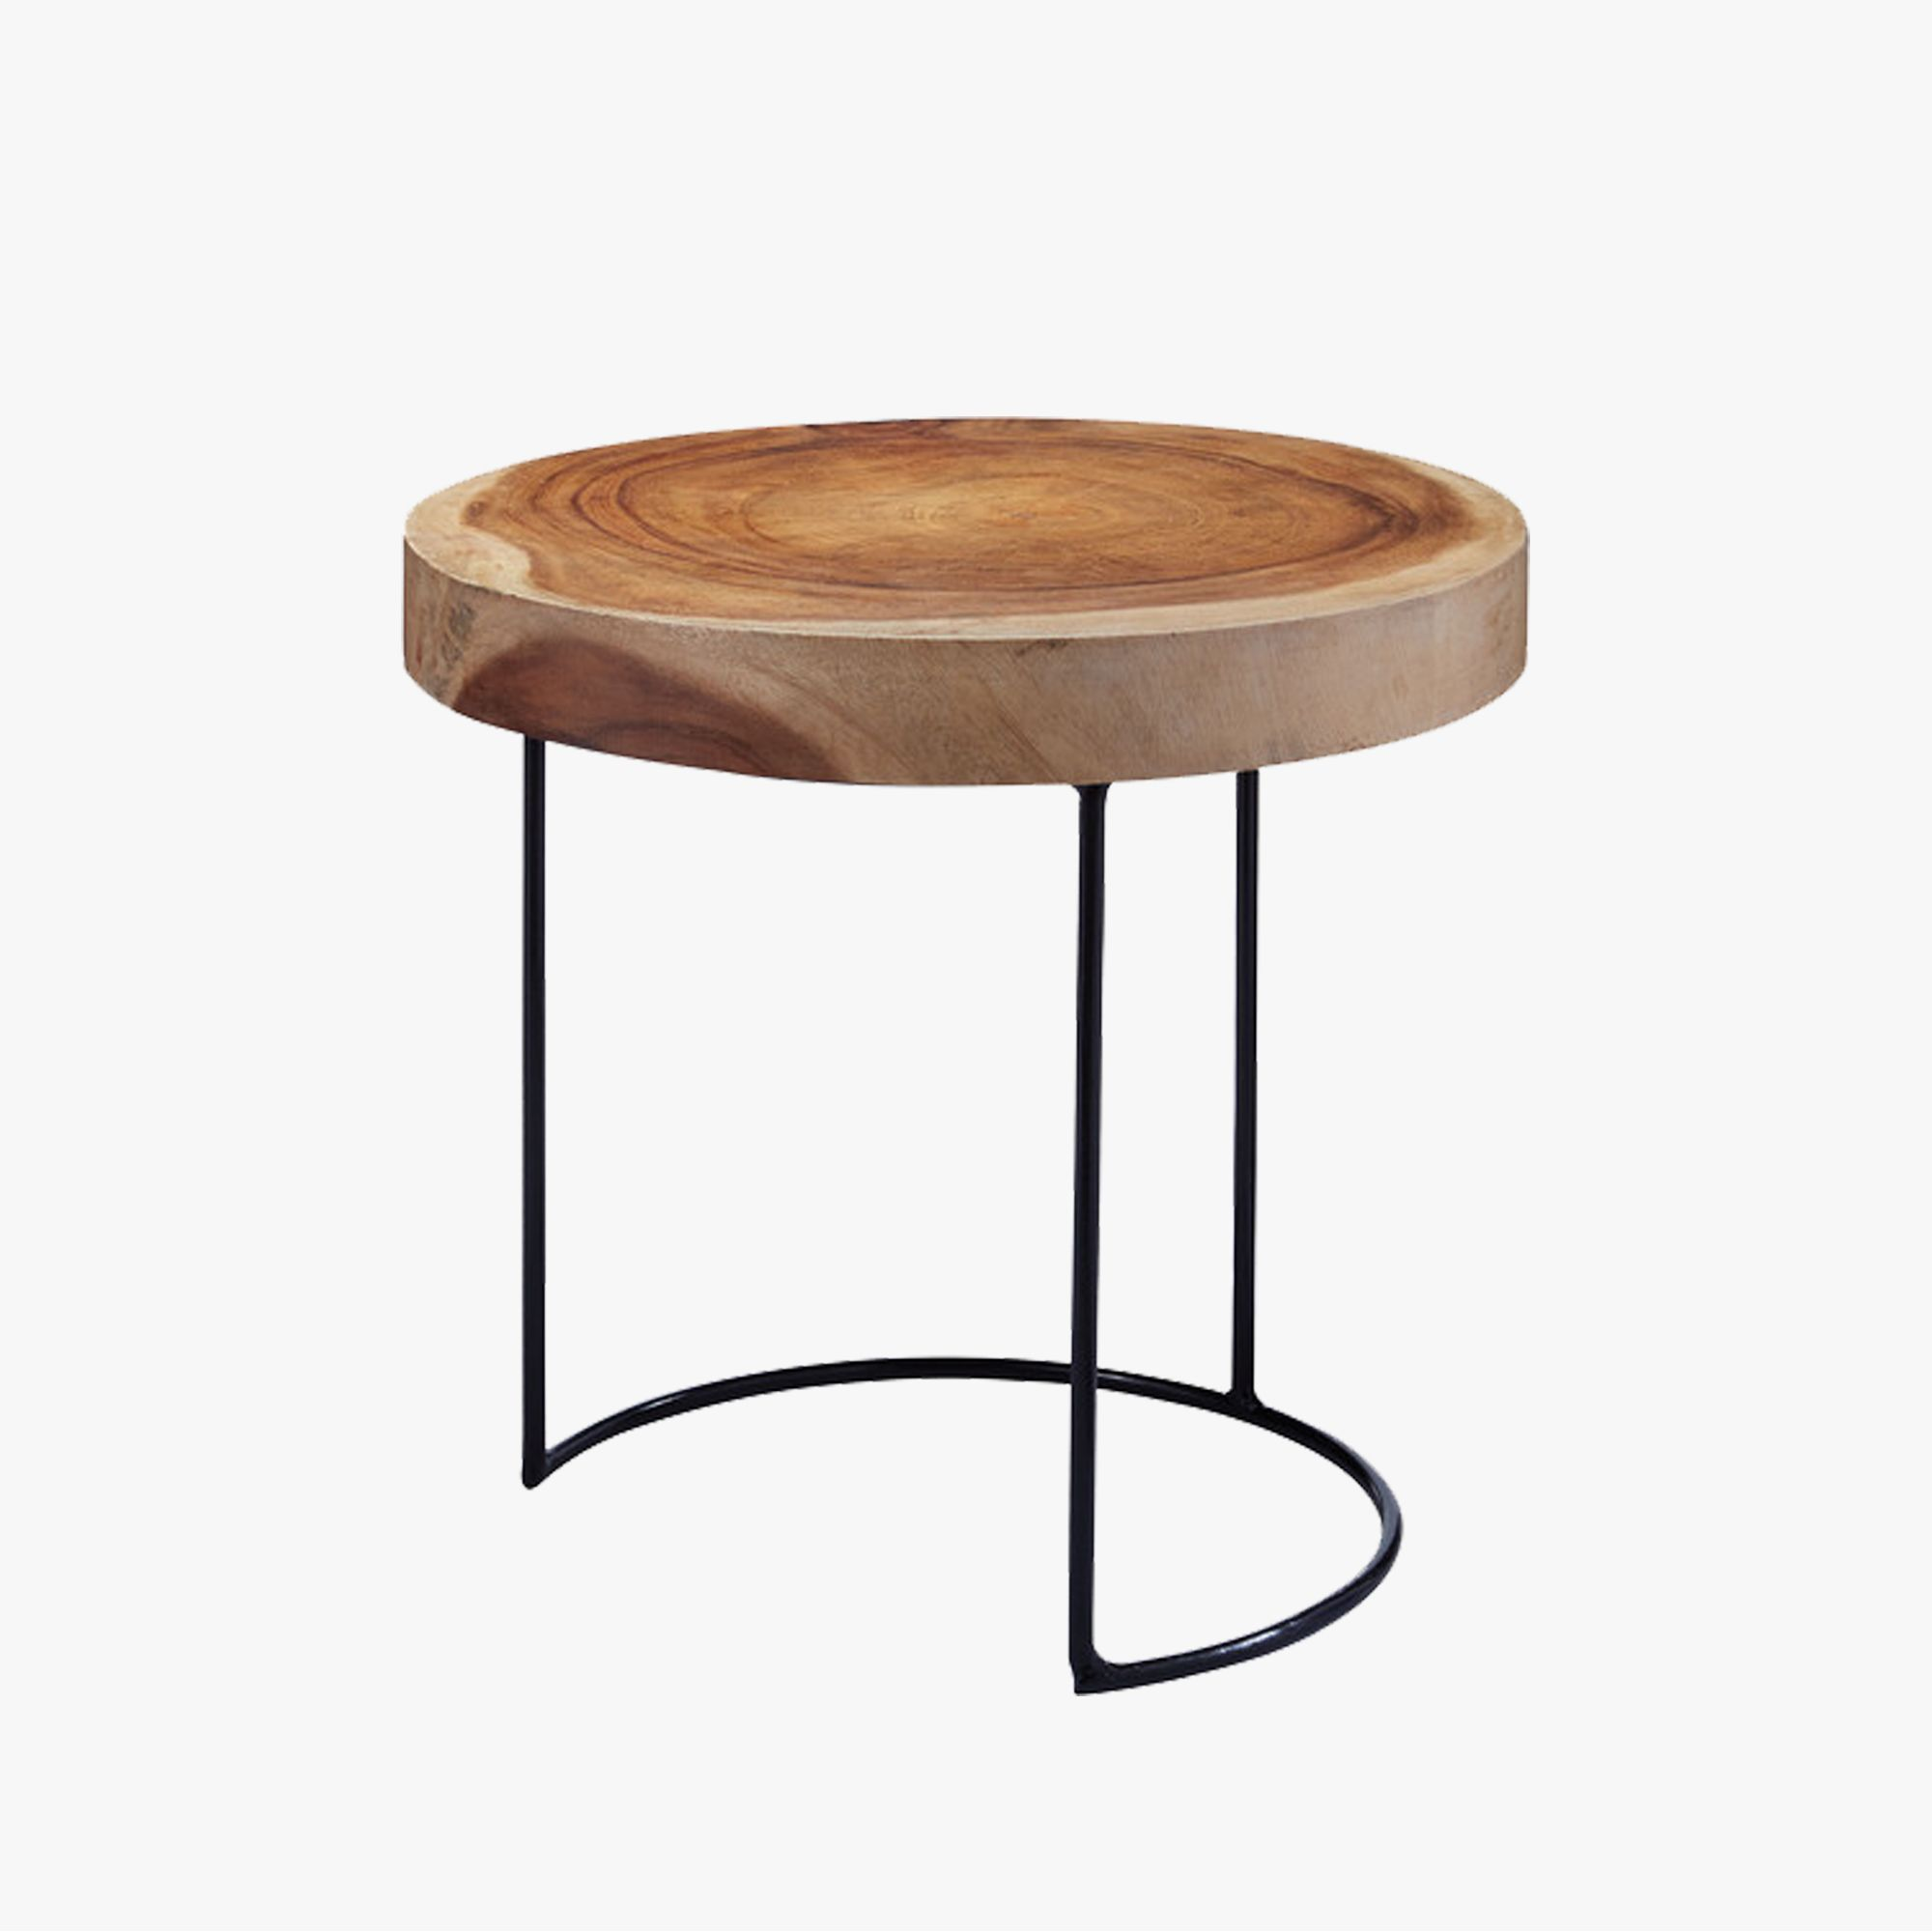 excellent wood accent table round tripod mango white below oval metal inspire lan square reclaimed tables target burkhardt faux unfinished solid and carved natural noam pressed